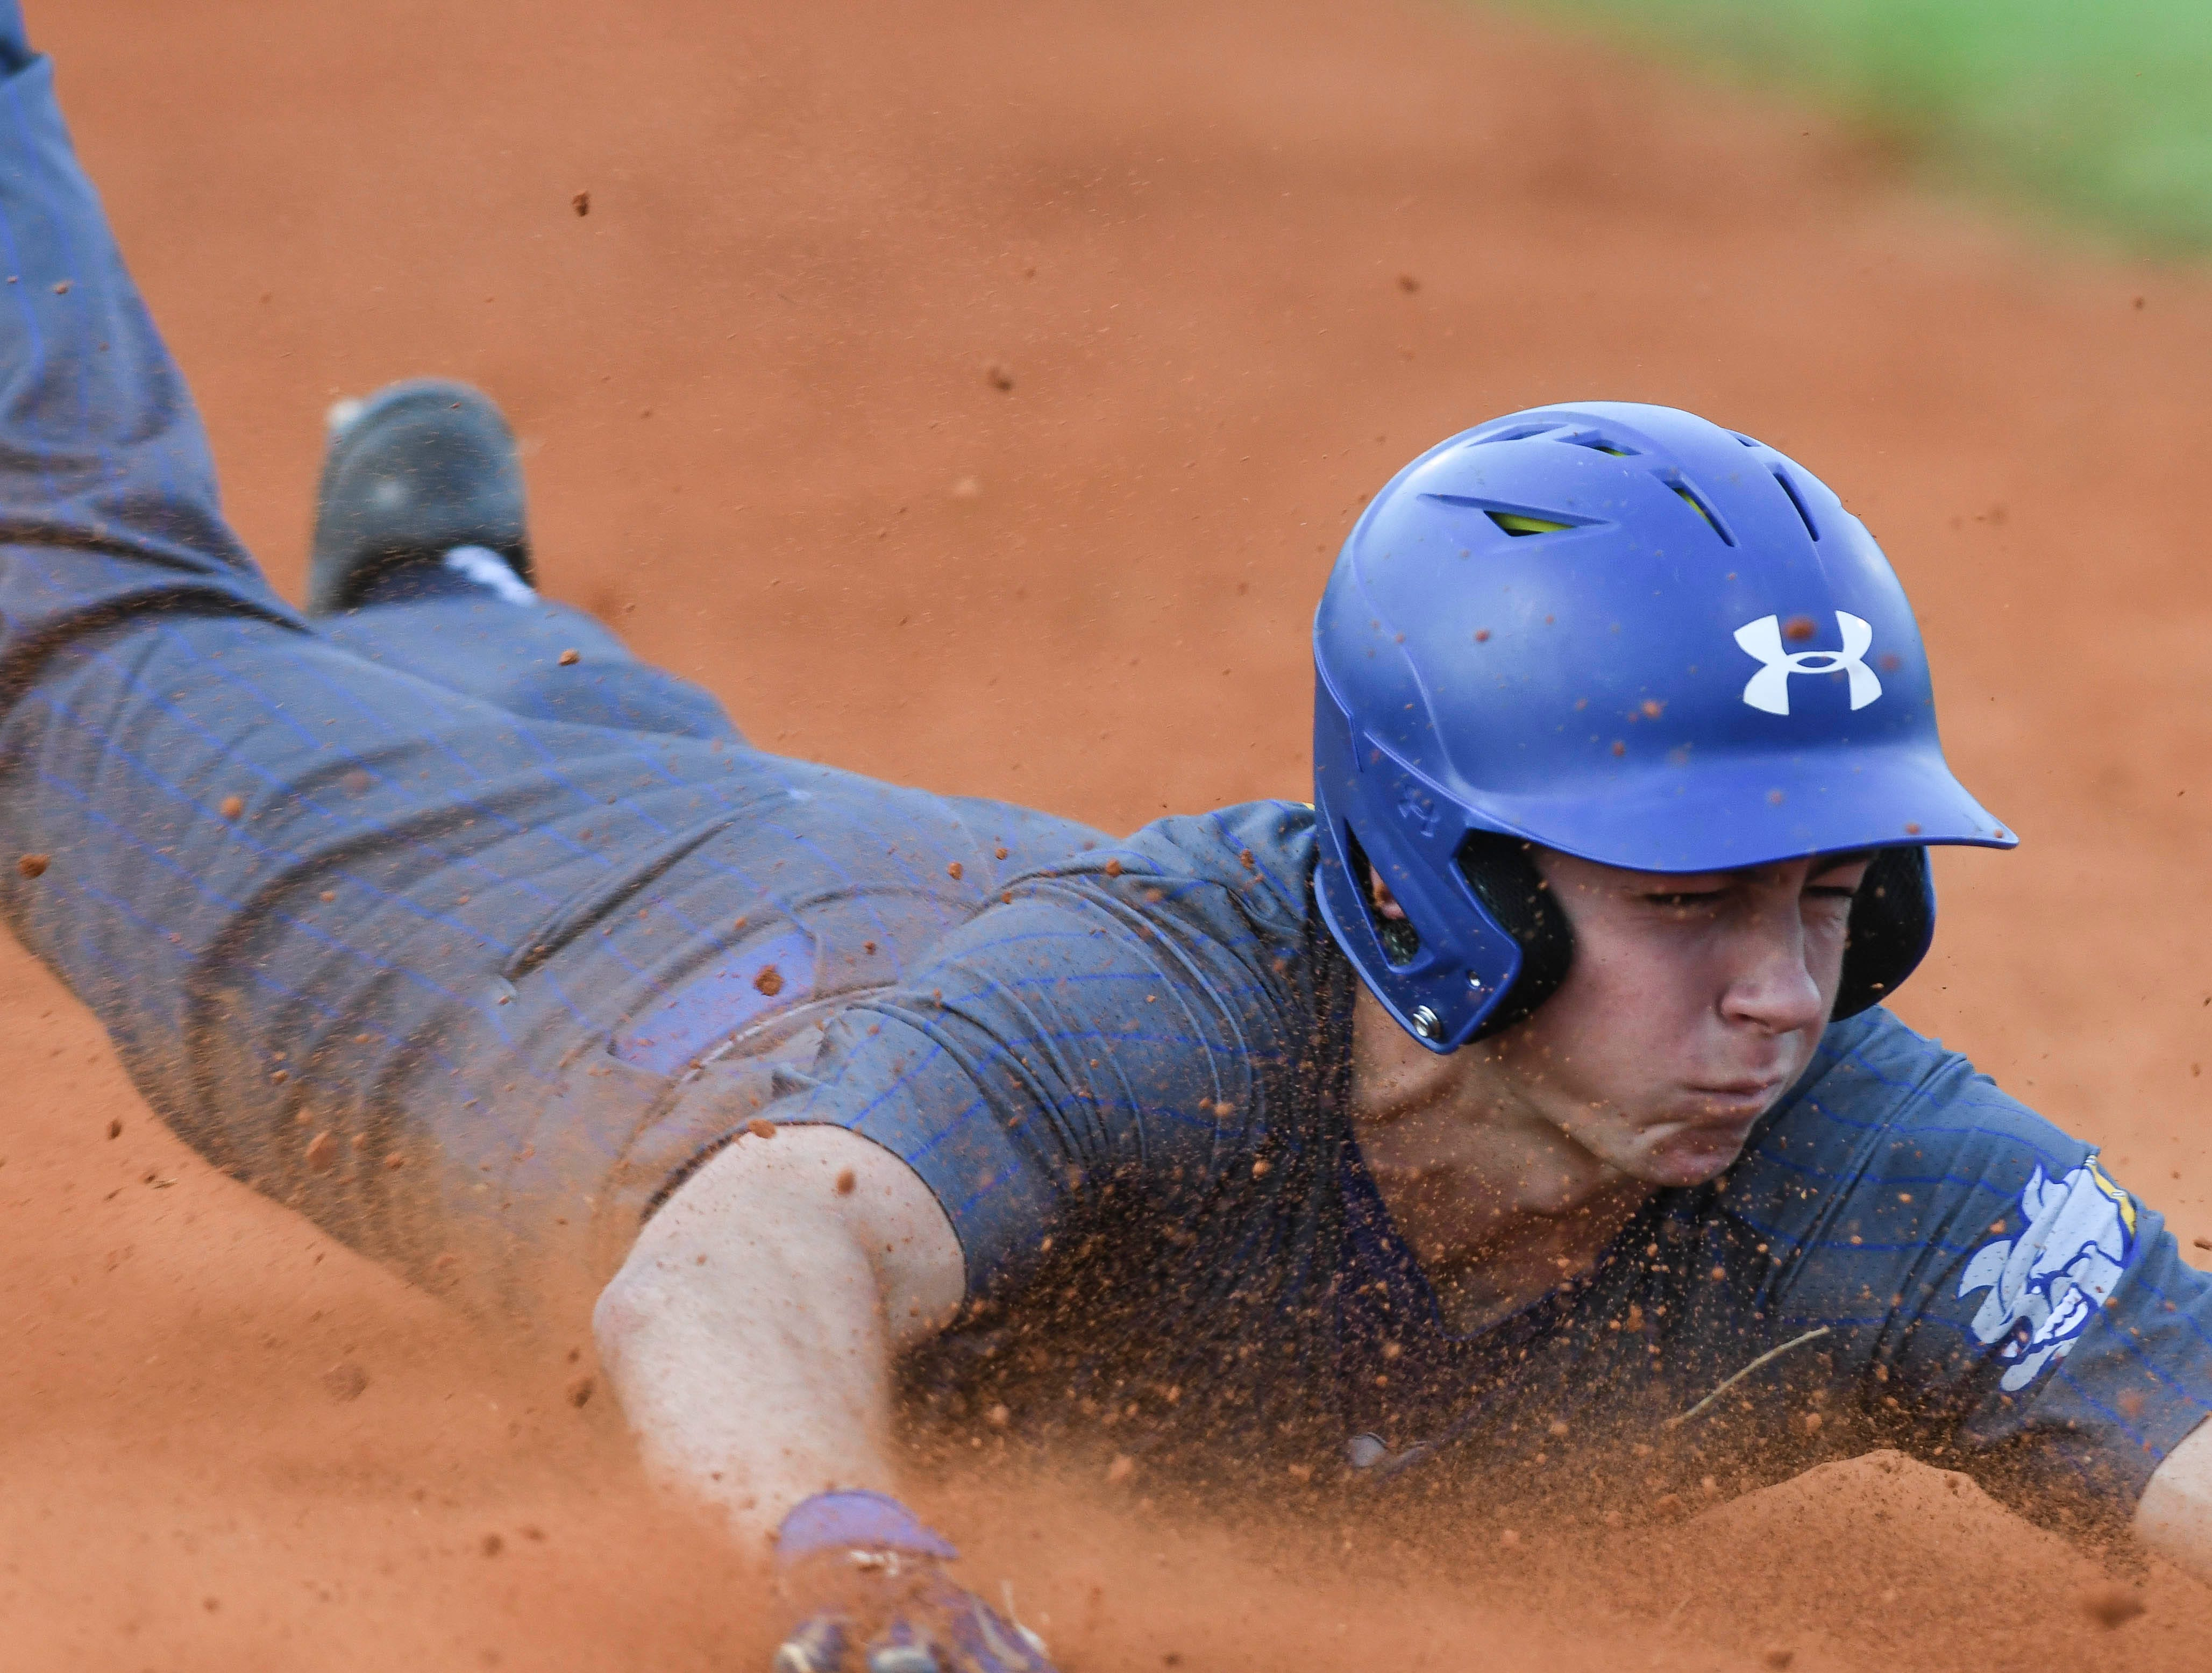 Roc Irlbech of Titusville slides in safe at third during Friday's game against Cocoa.